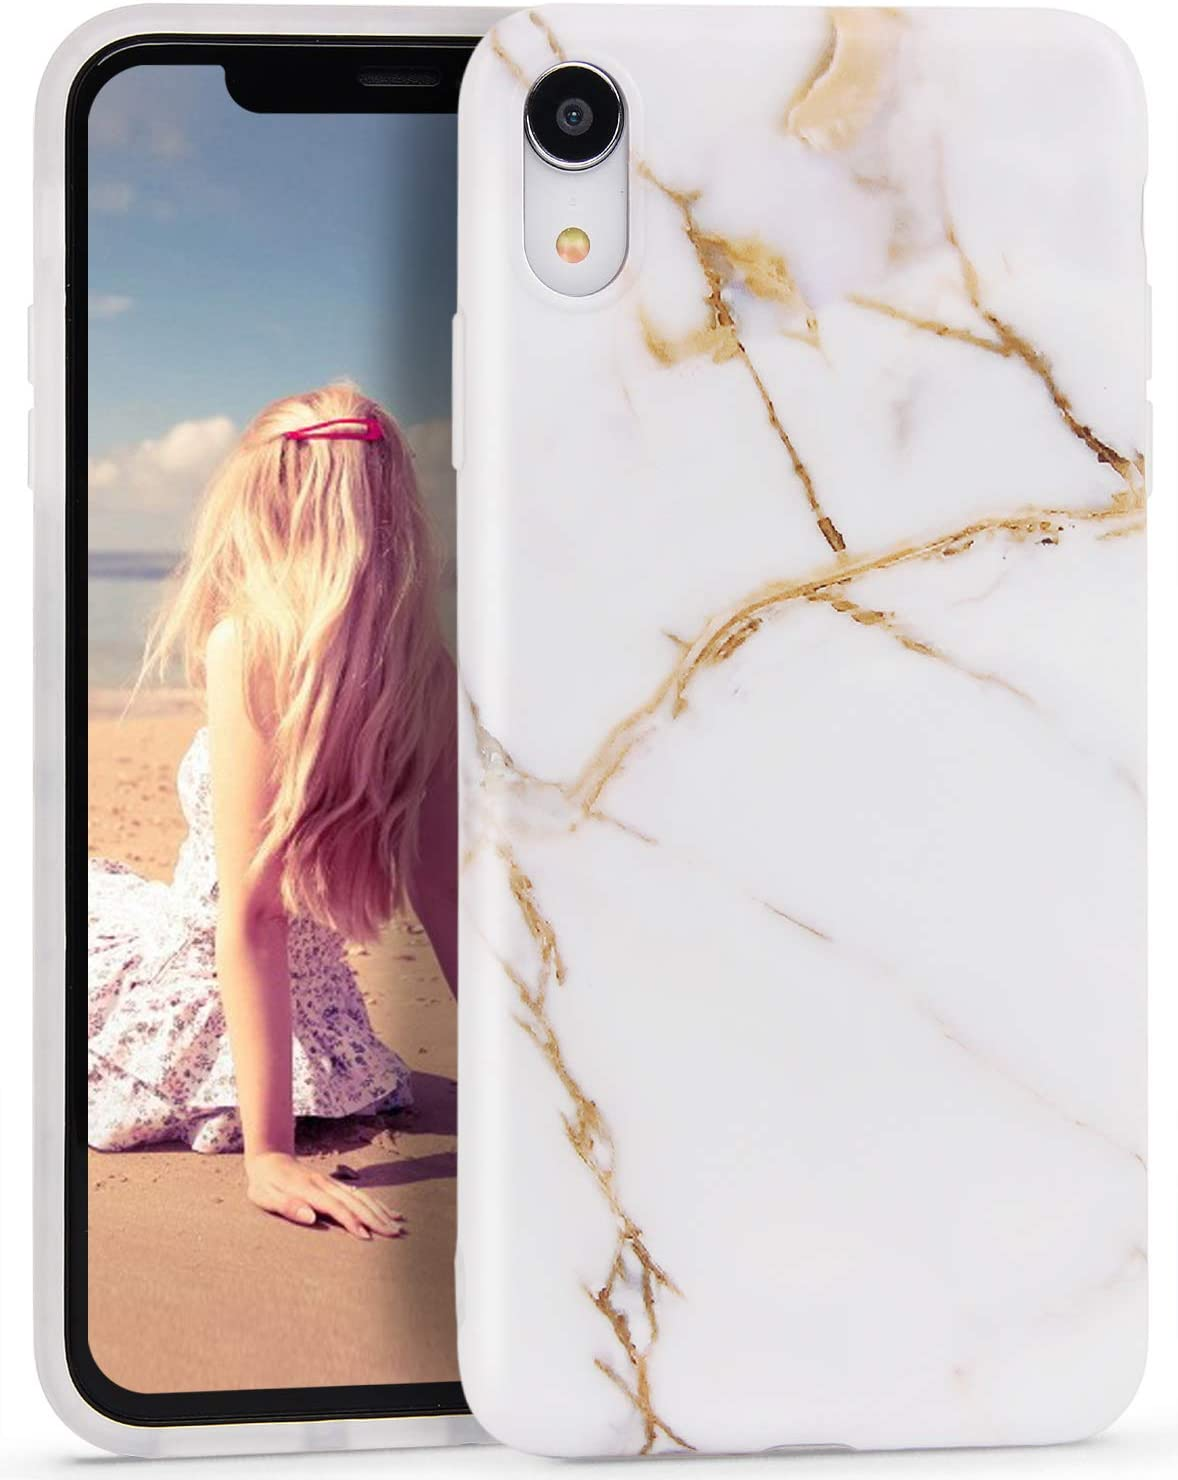 Imikoko iPhone Xr Case, iPhone Xr Marble Case, Slim Soft Flexible TPU Marble Pattern Cover for Apple iPhone Xr 6.1